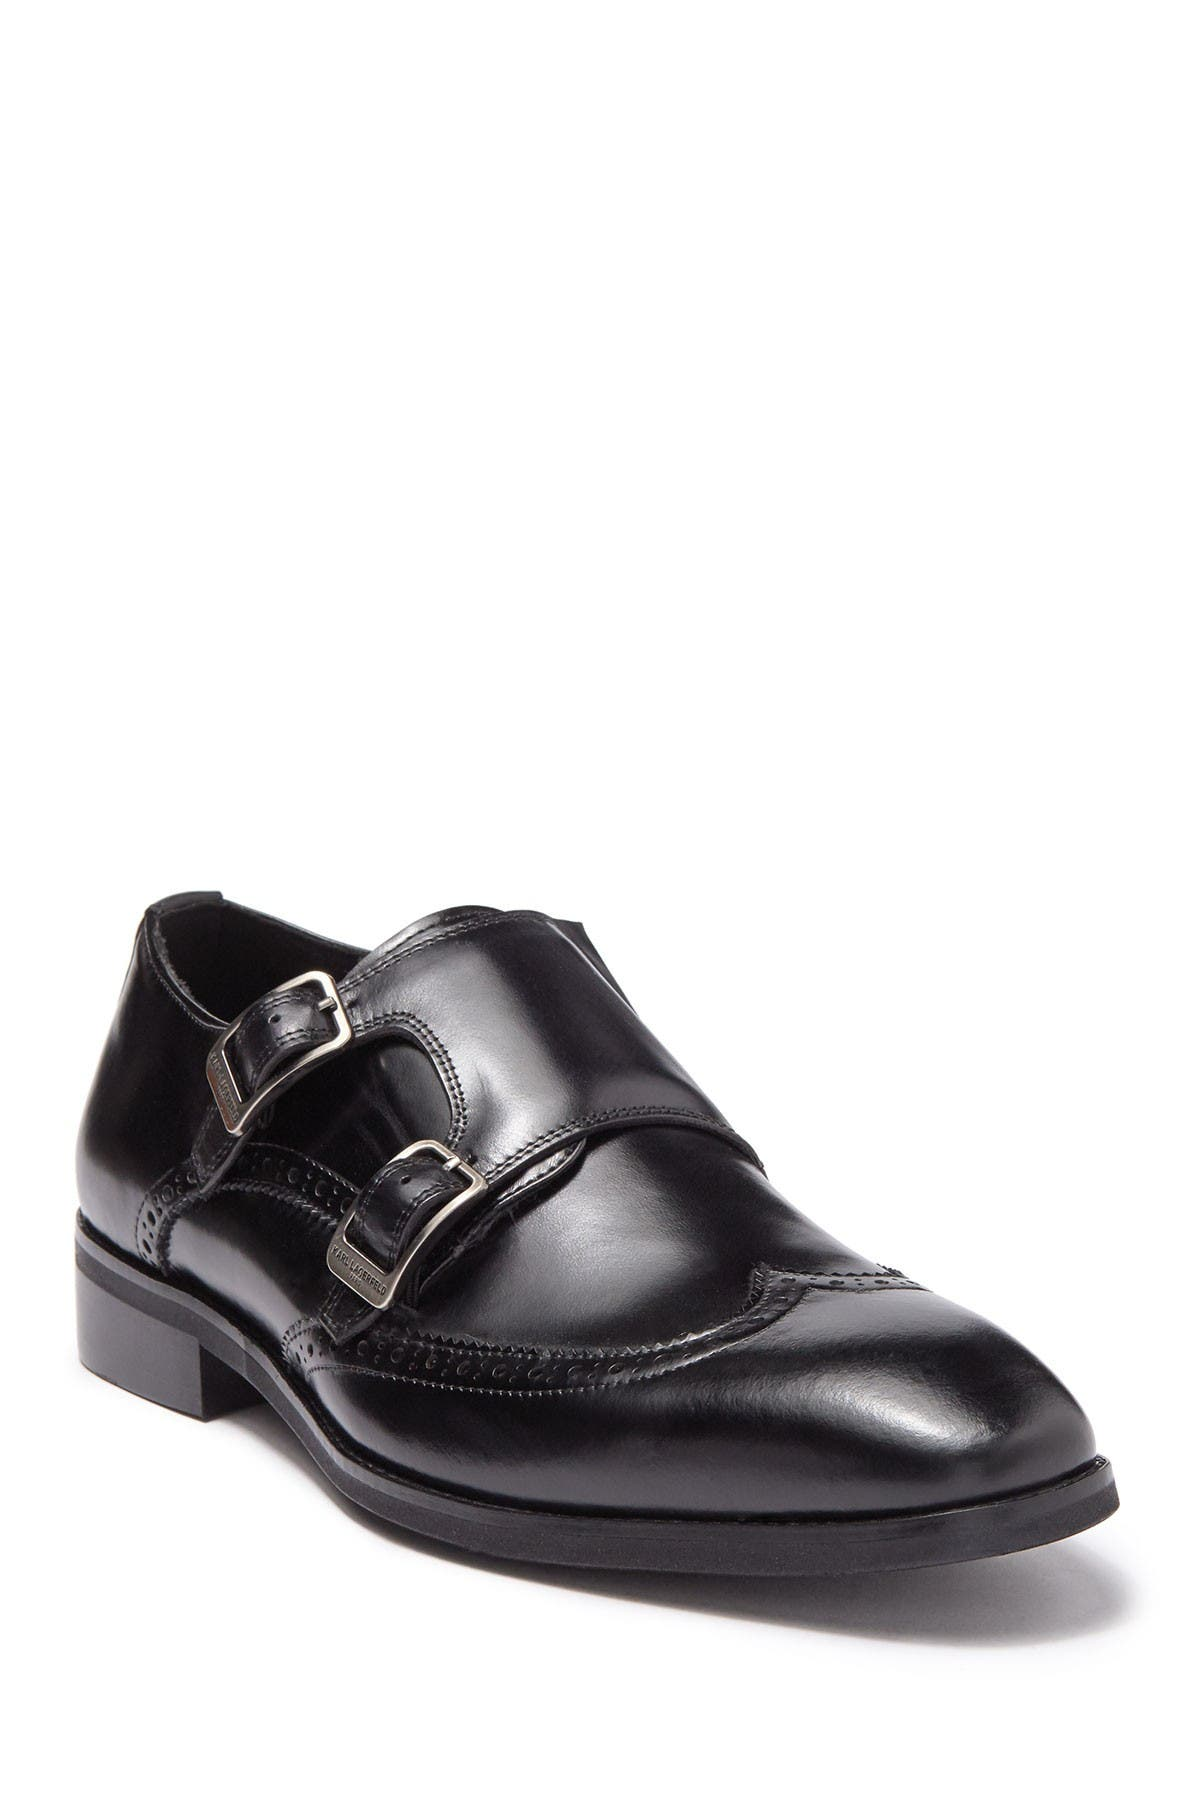 Image of Karl Lagerfeld Paris Double Monk Strap Wingtip Loafer